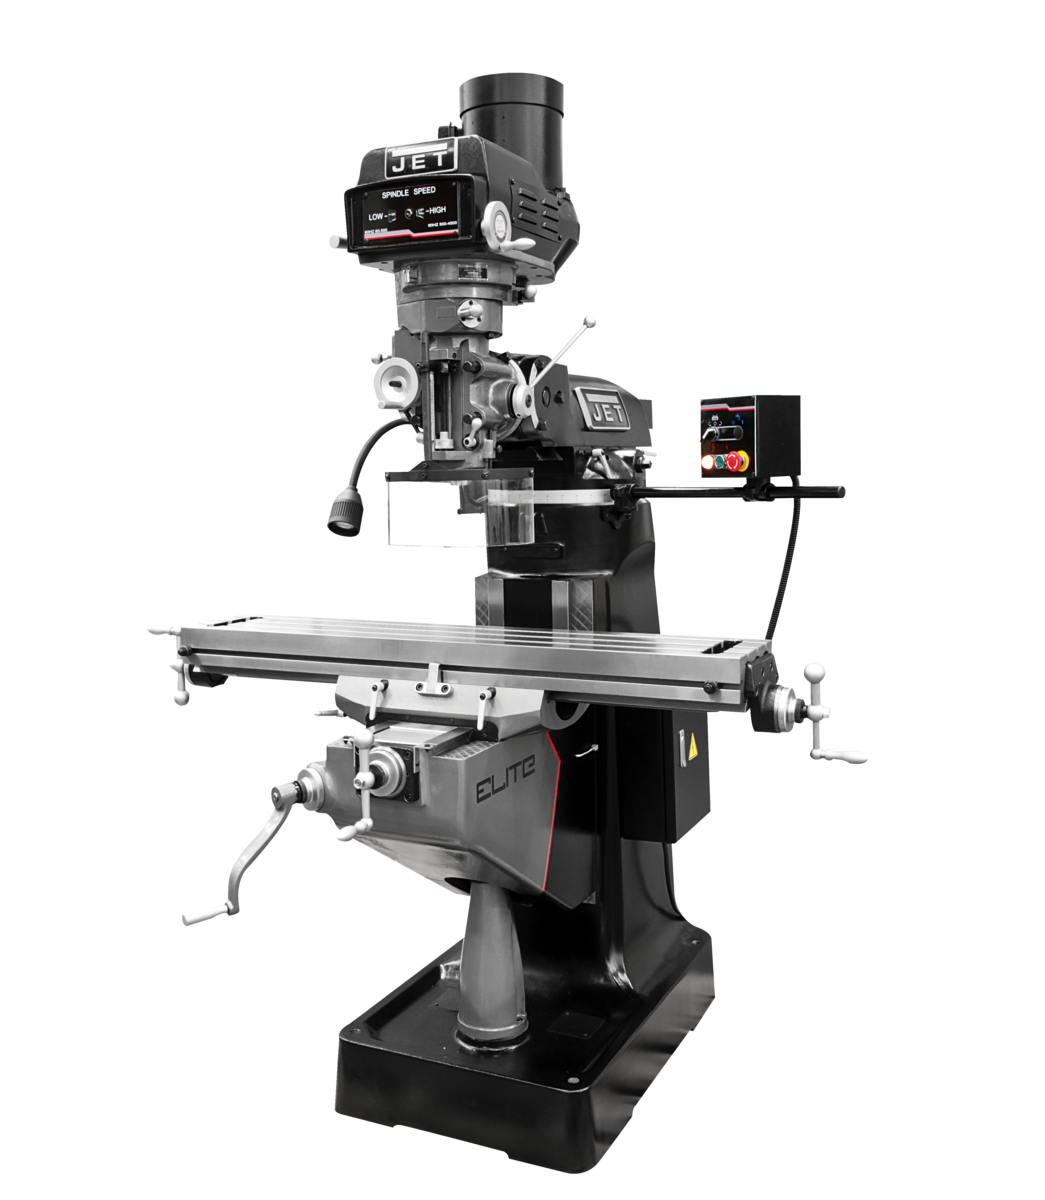 ETM-949 Mill with 2-Axis Newall DP700 DRO and X-Axis JET Powerfeed and USA Made Air Draw Bar